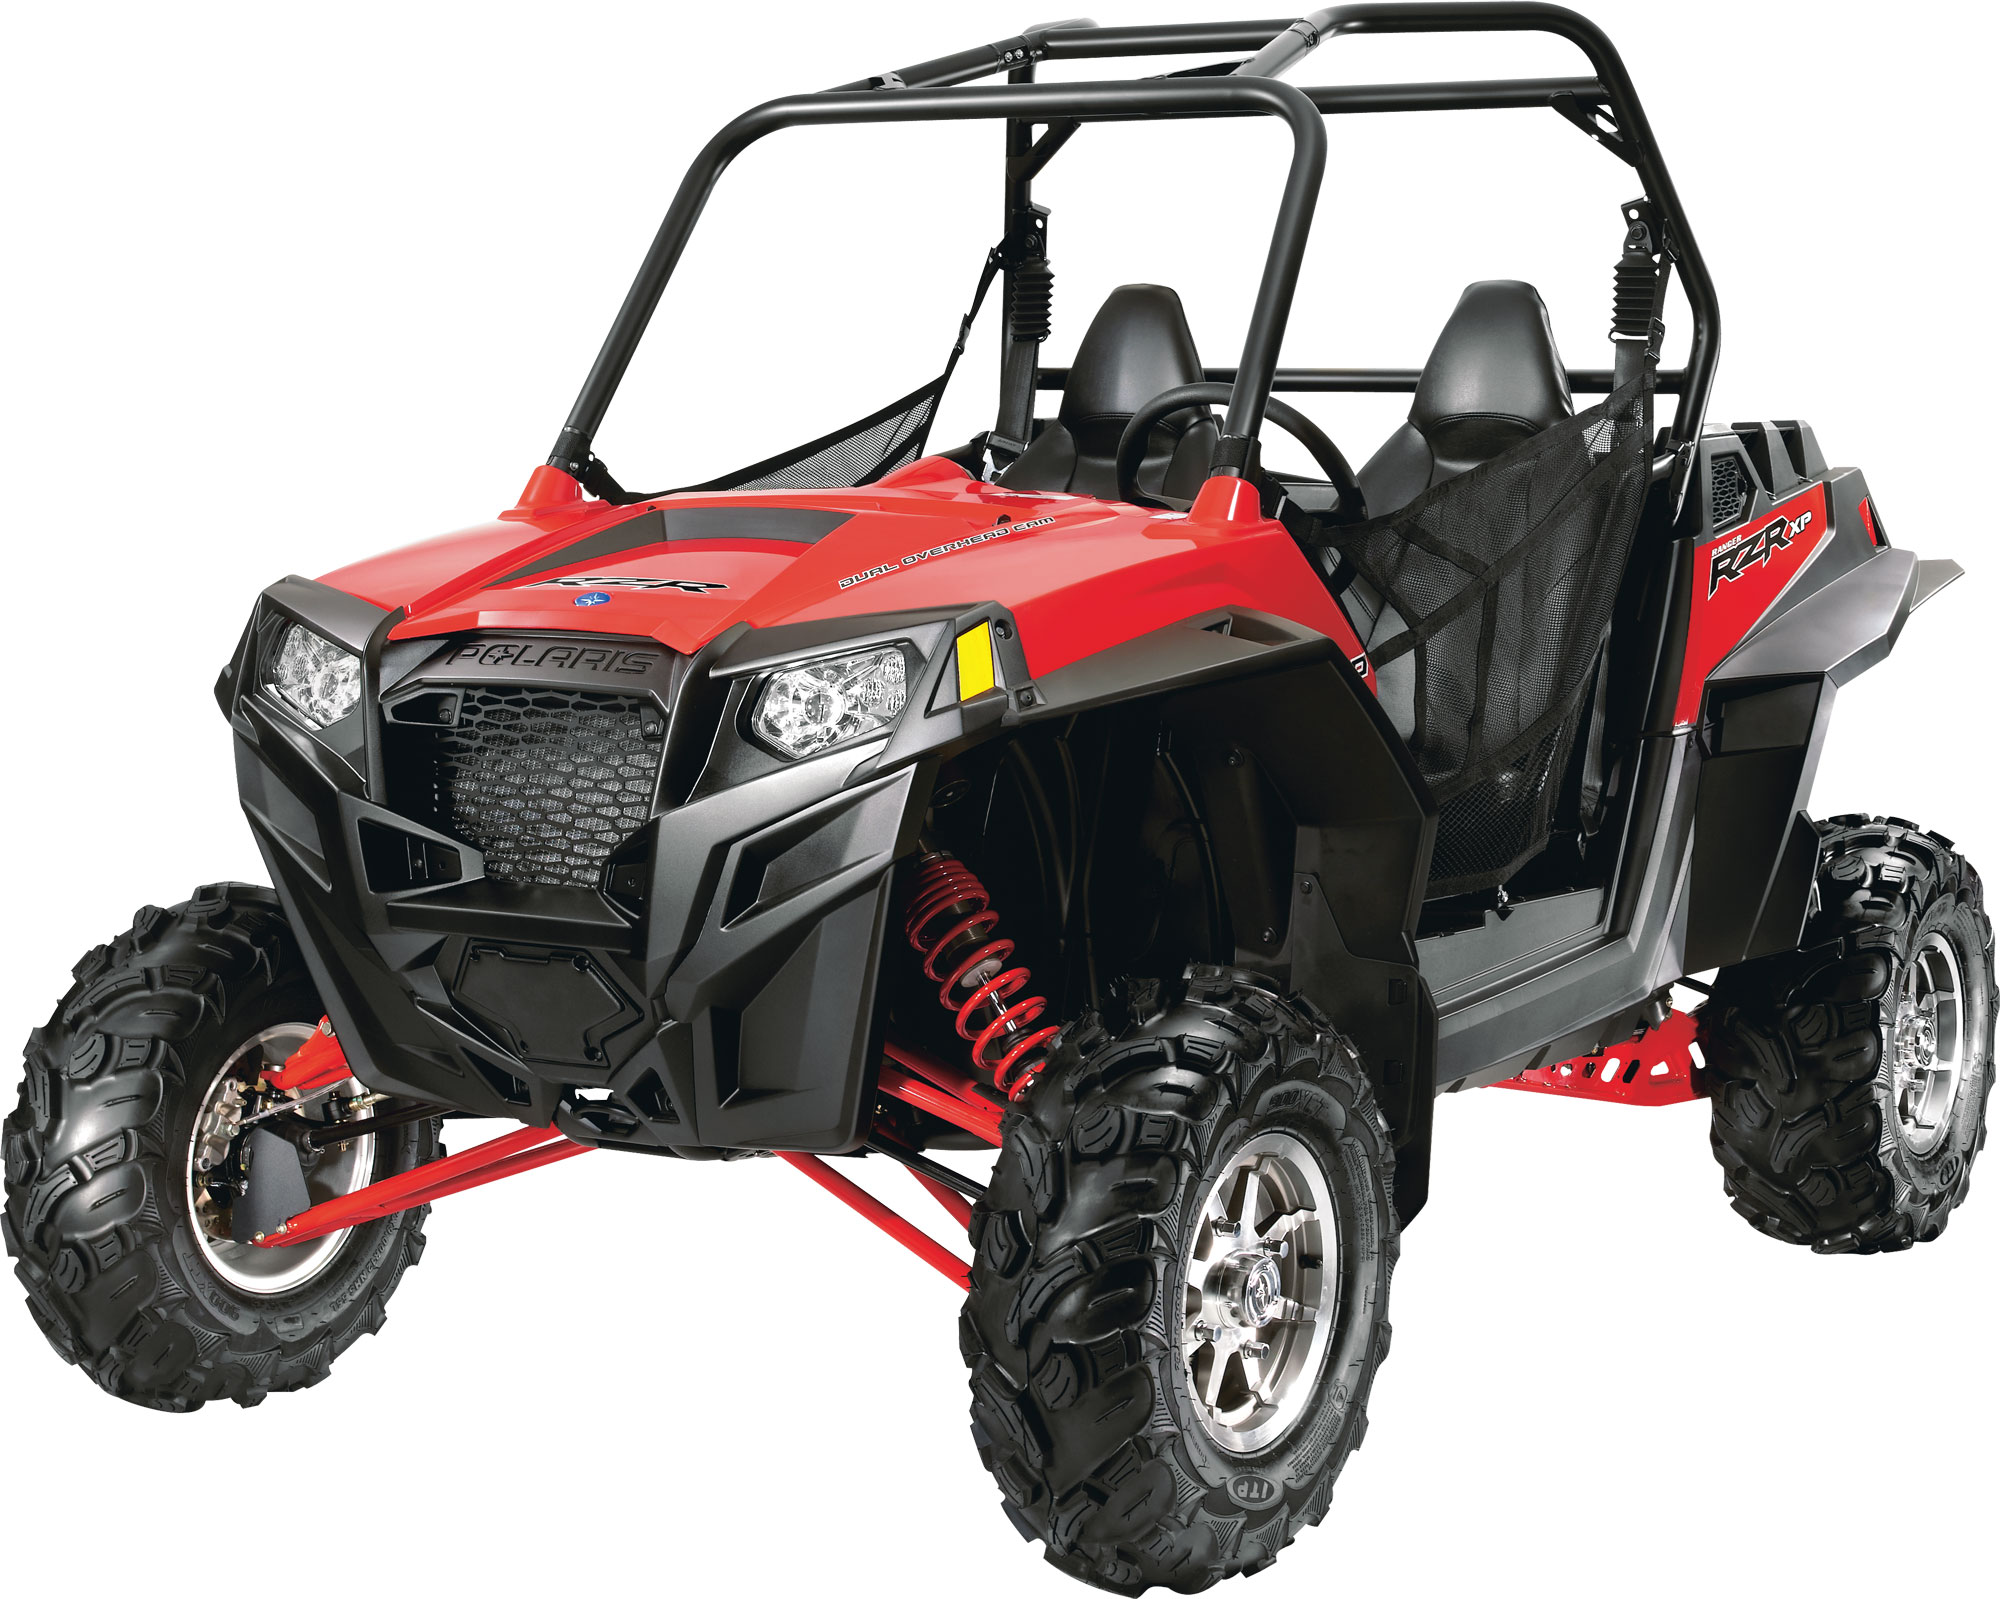 Polaris Ranger RZR XP900 2011 images #169554